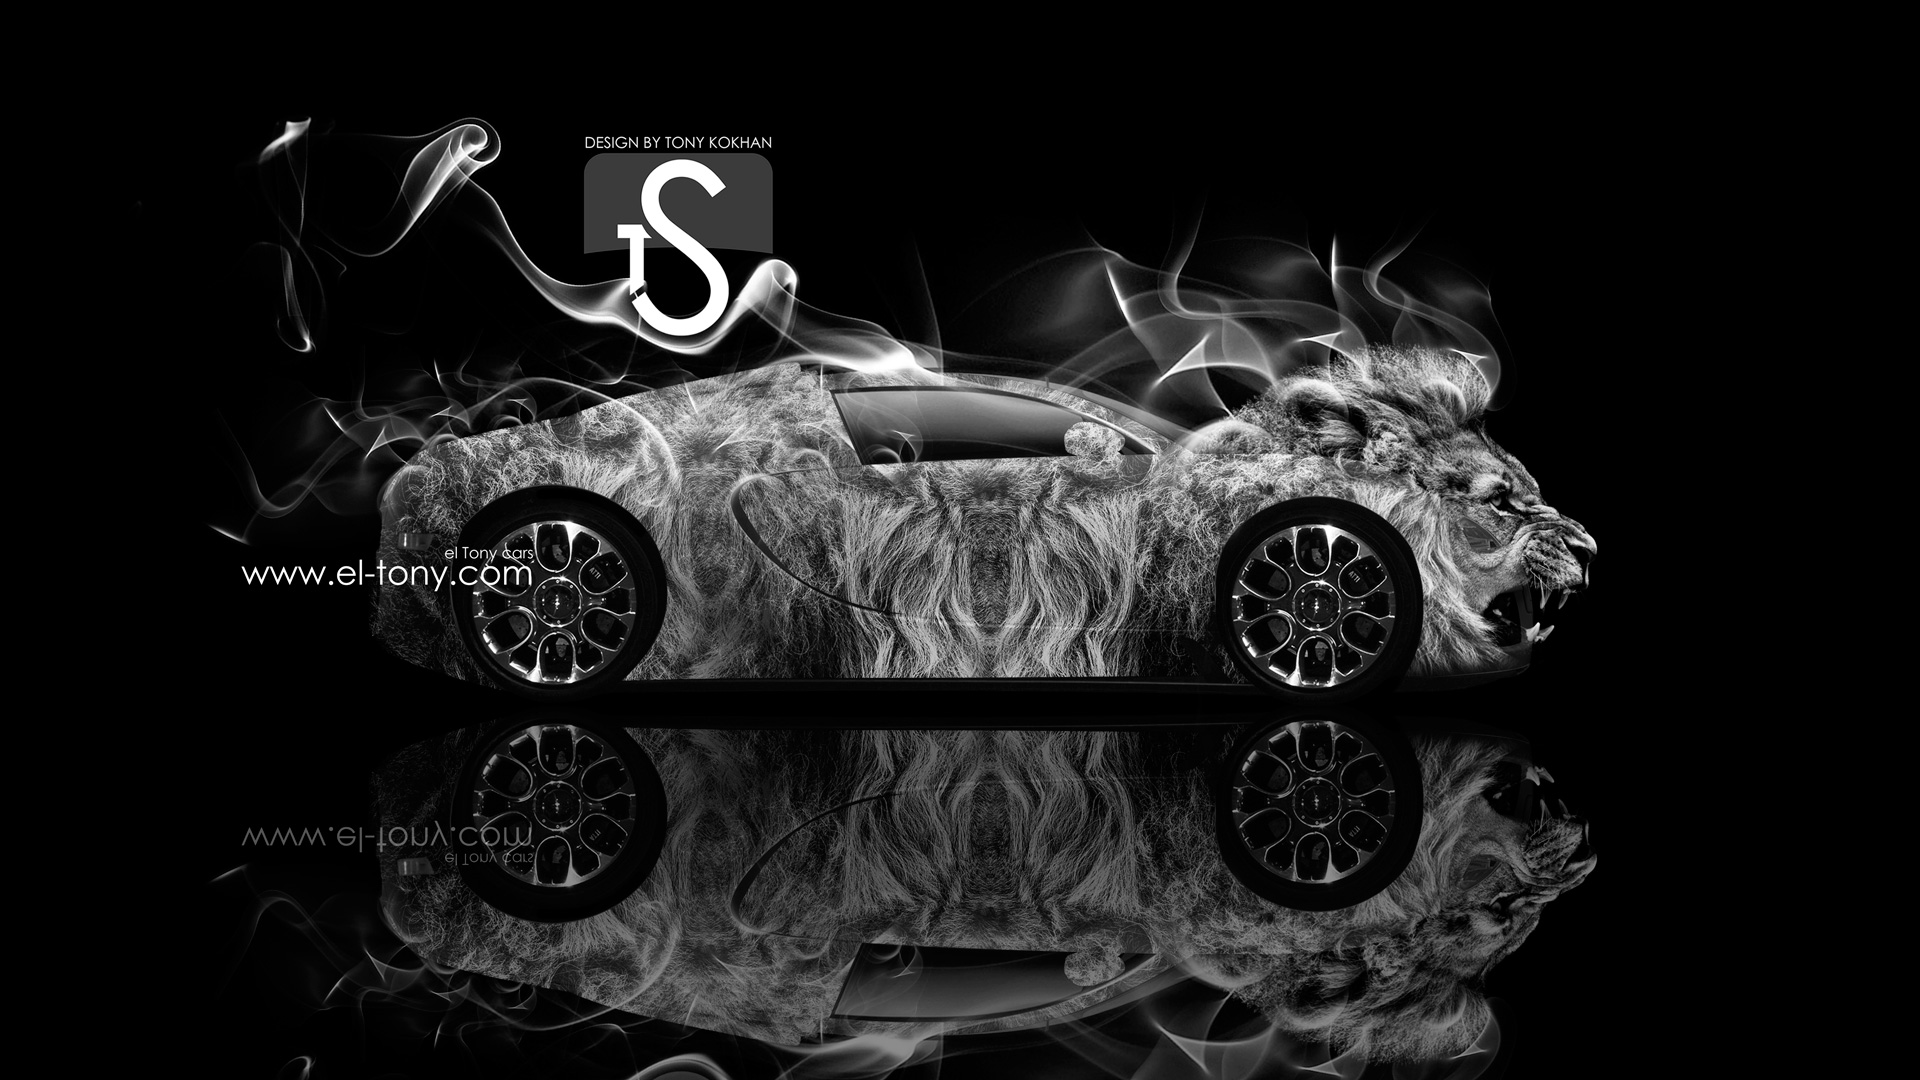 Etonnant Bugatti Veyron Lion Smoke Power Car 2013 Silver